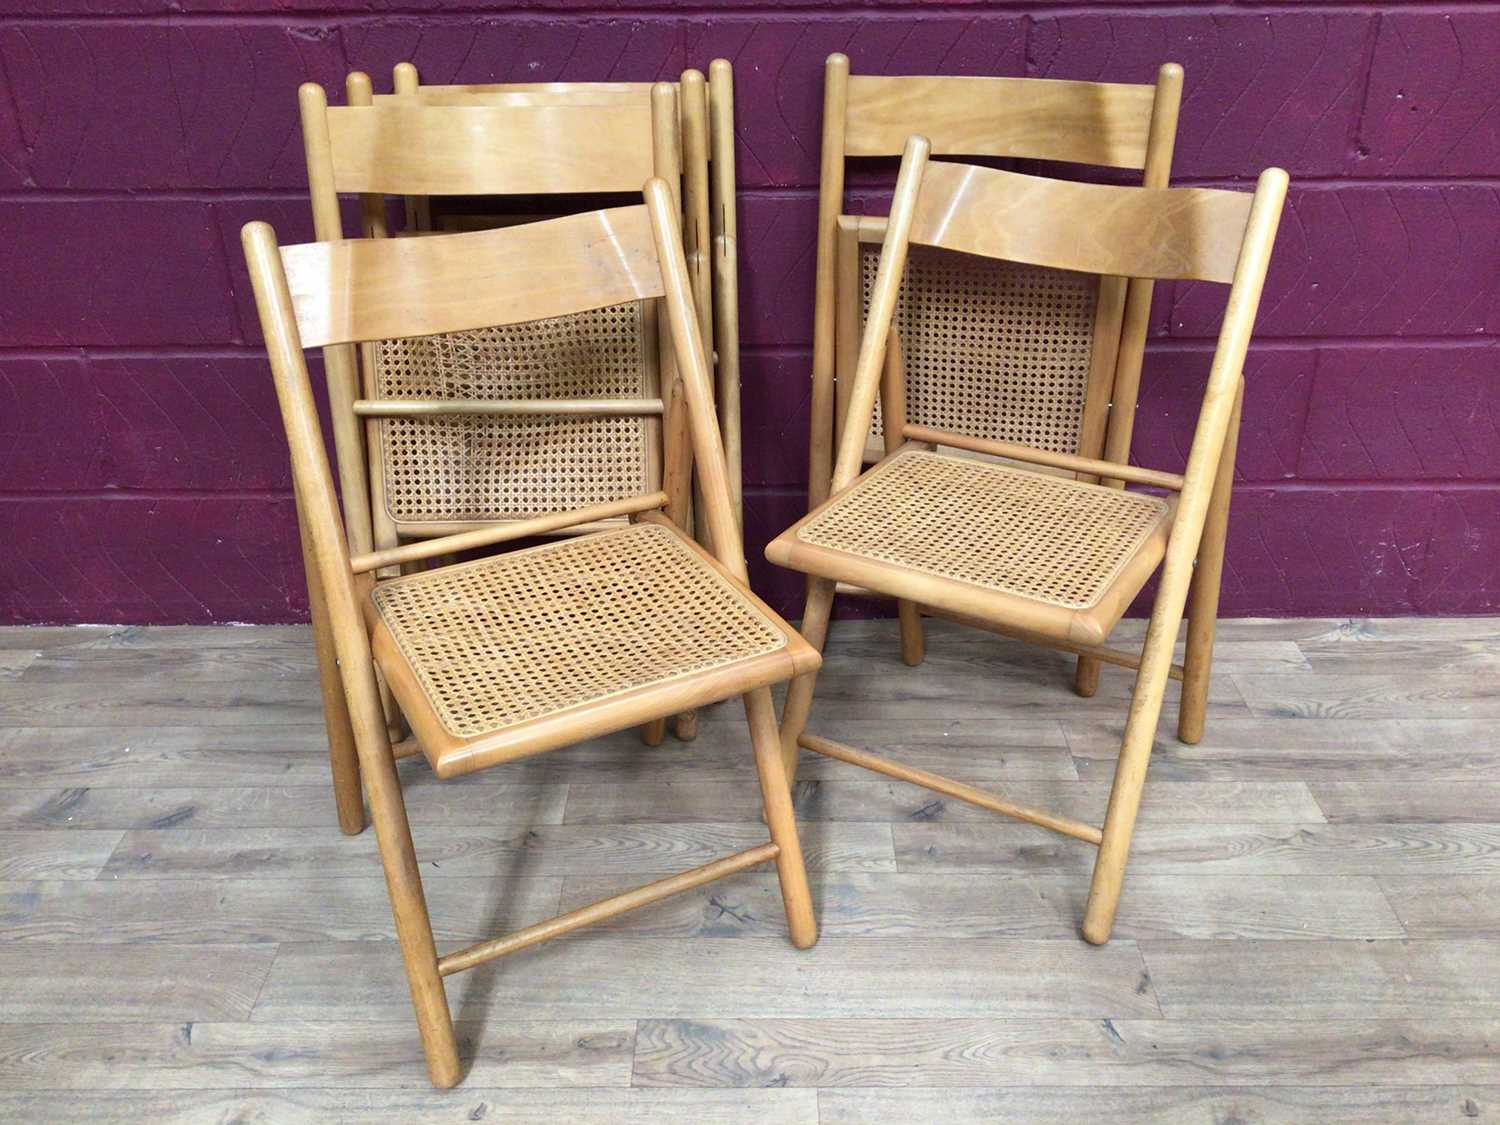 Six beech folding chairs with cane seats